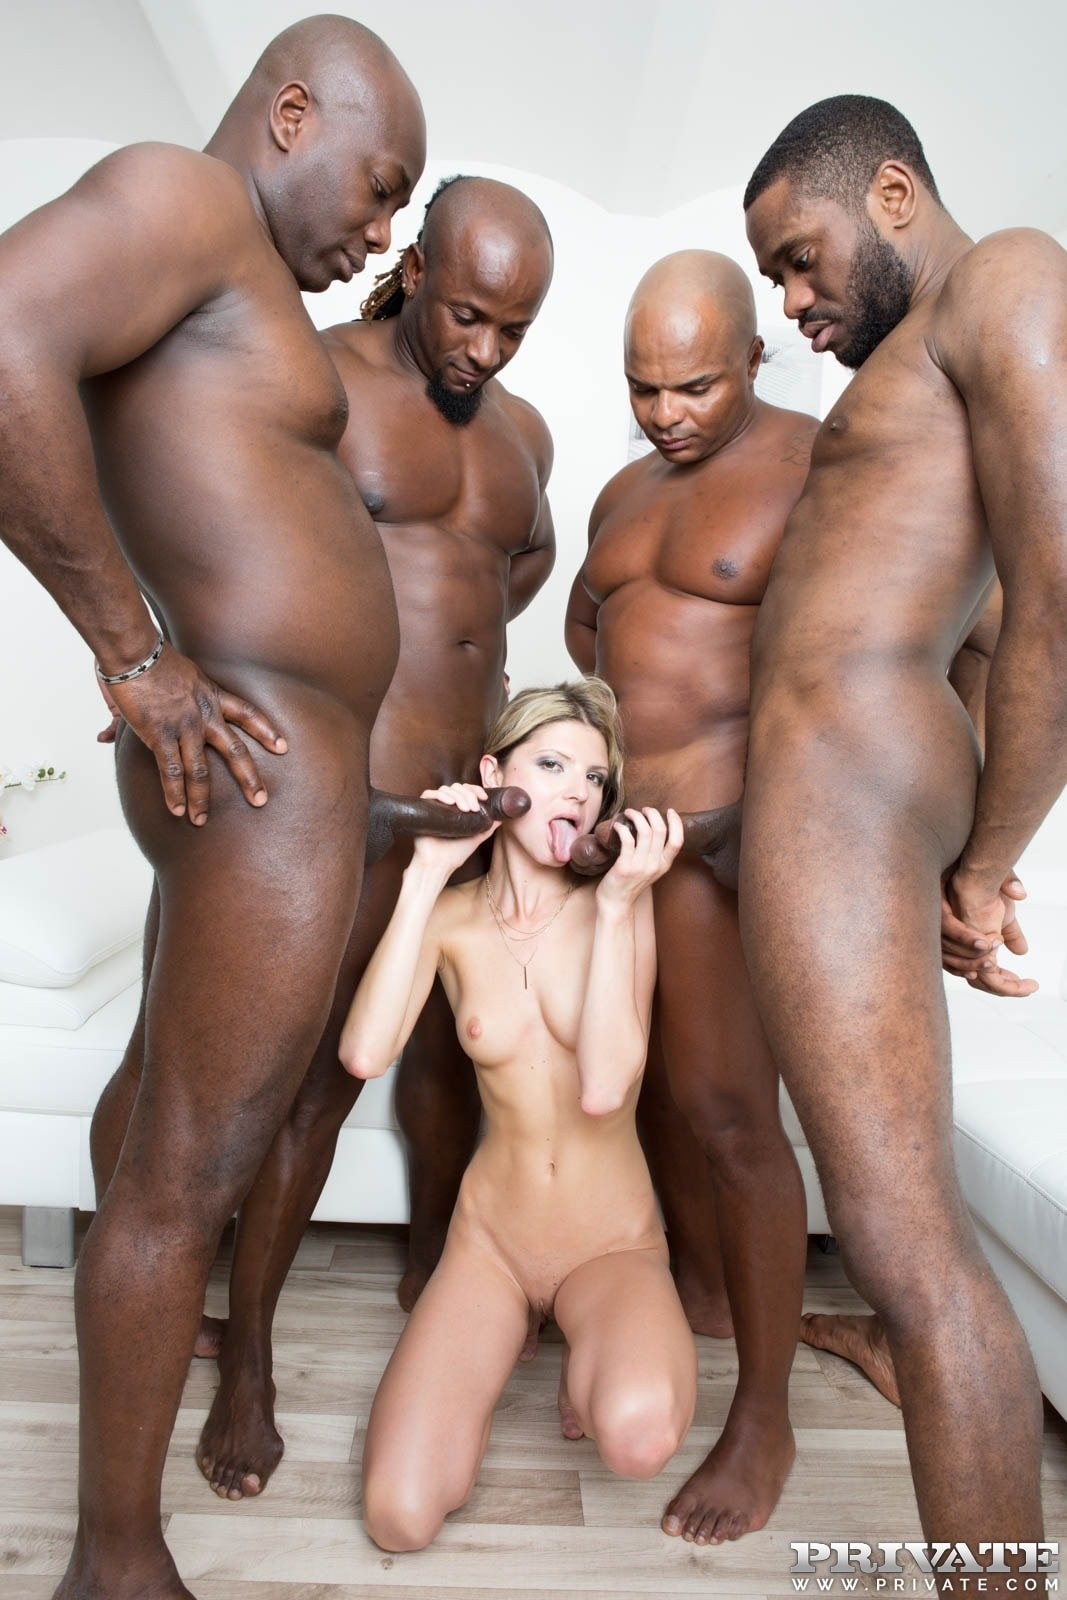 Eva Notty Loves Going After Hard Dick Stud! there